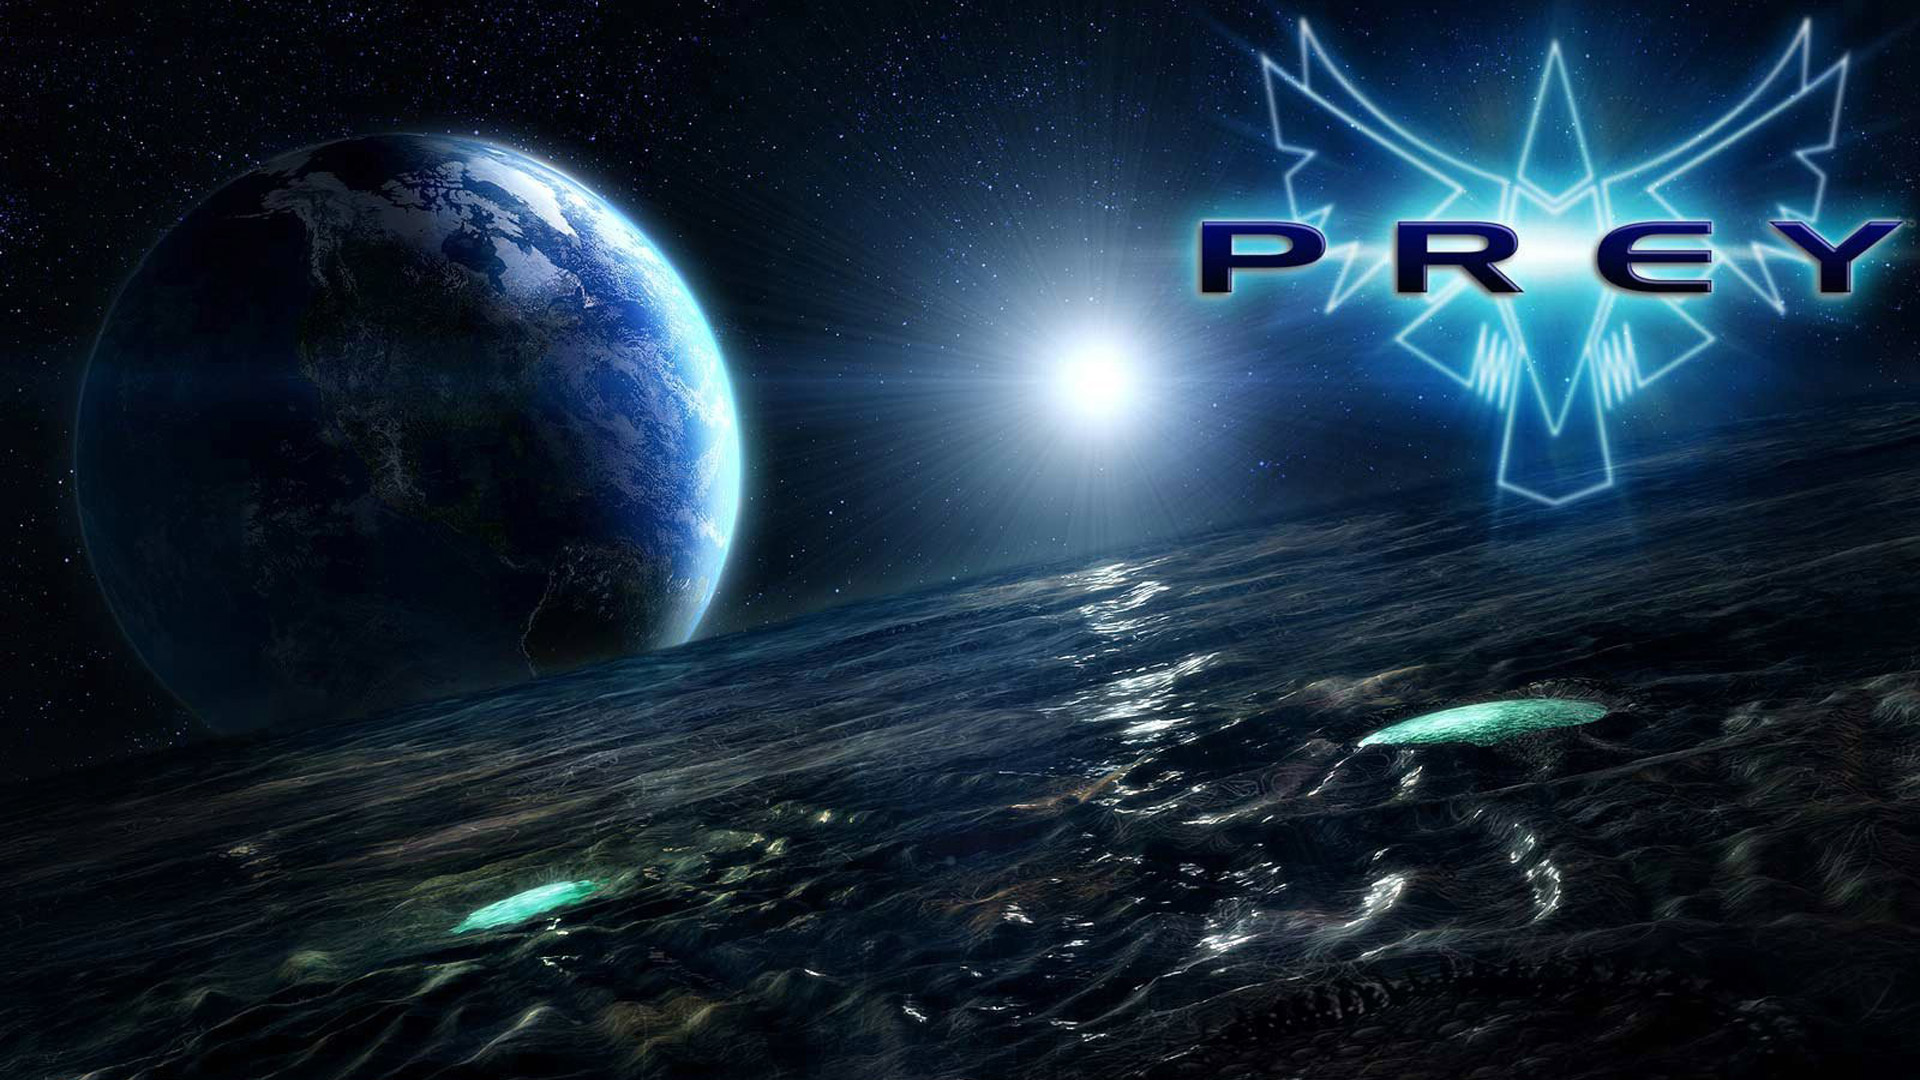 Prey Wallpaper in 1920x1080